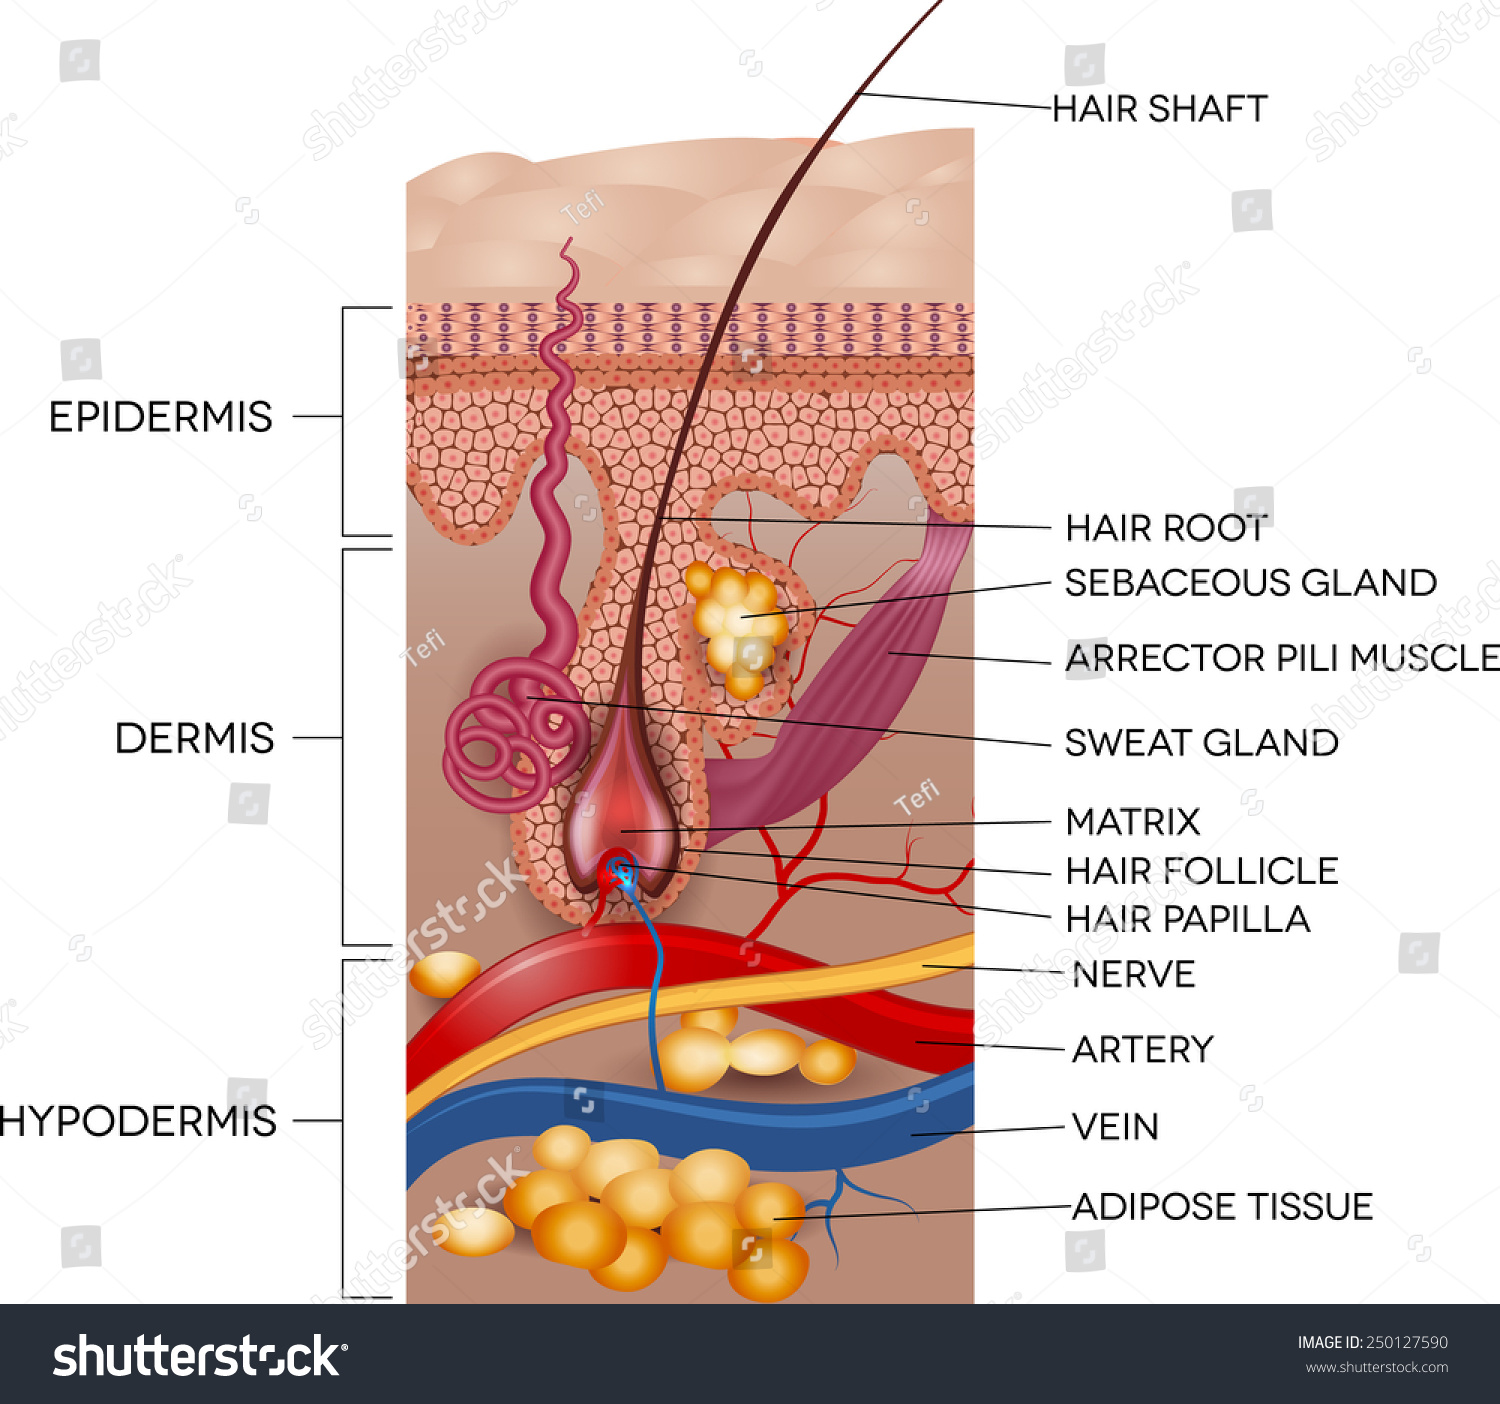 skin layers diagram labeled simple single line software free and hair anatomy detailed medical